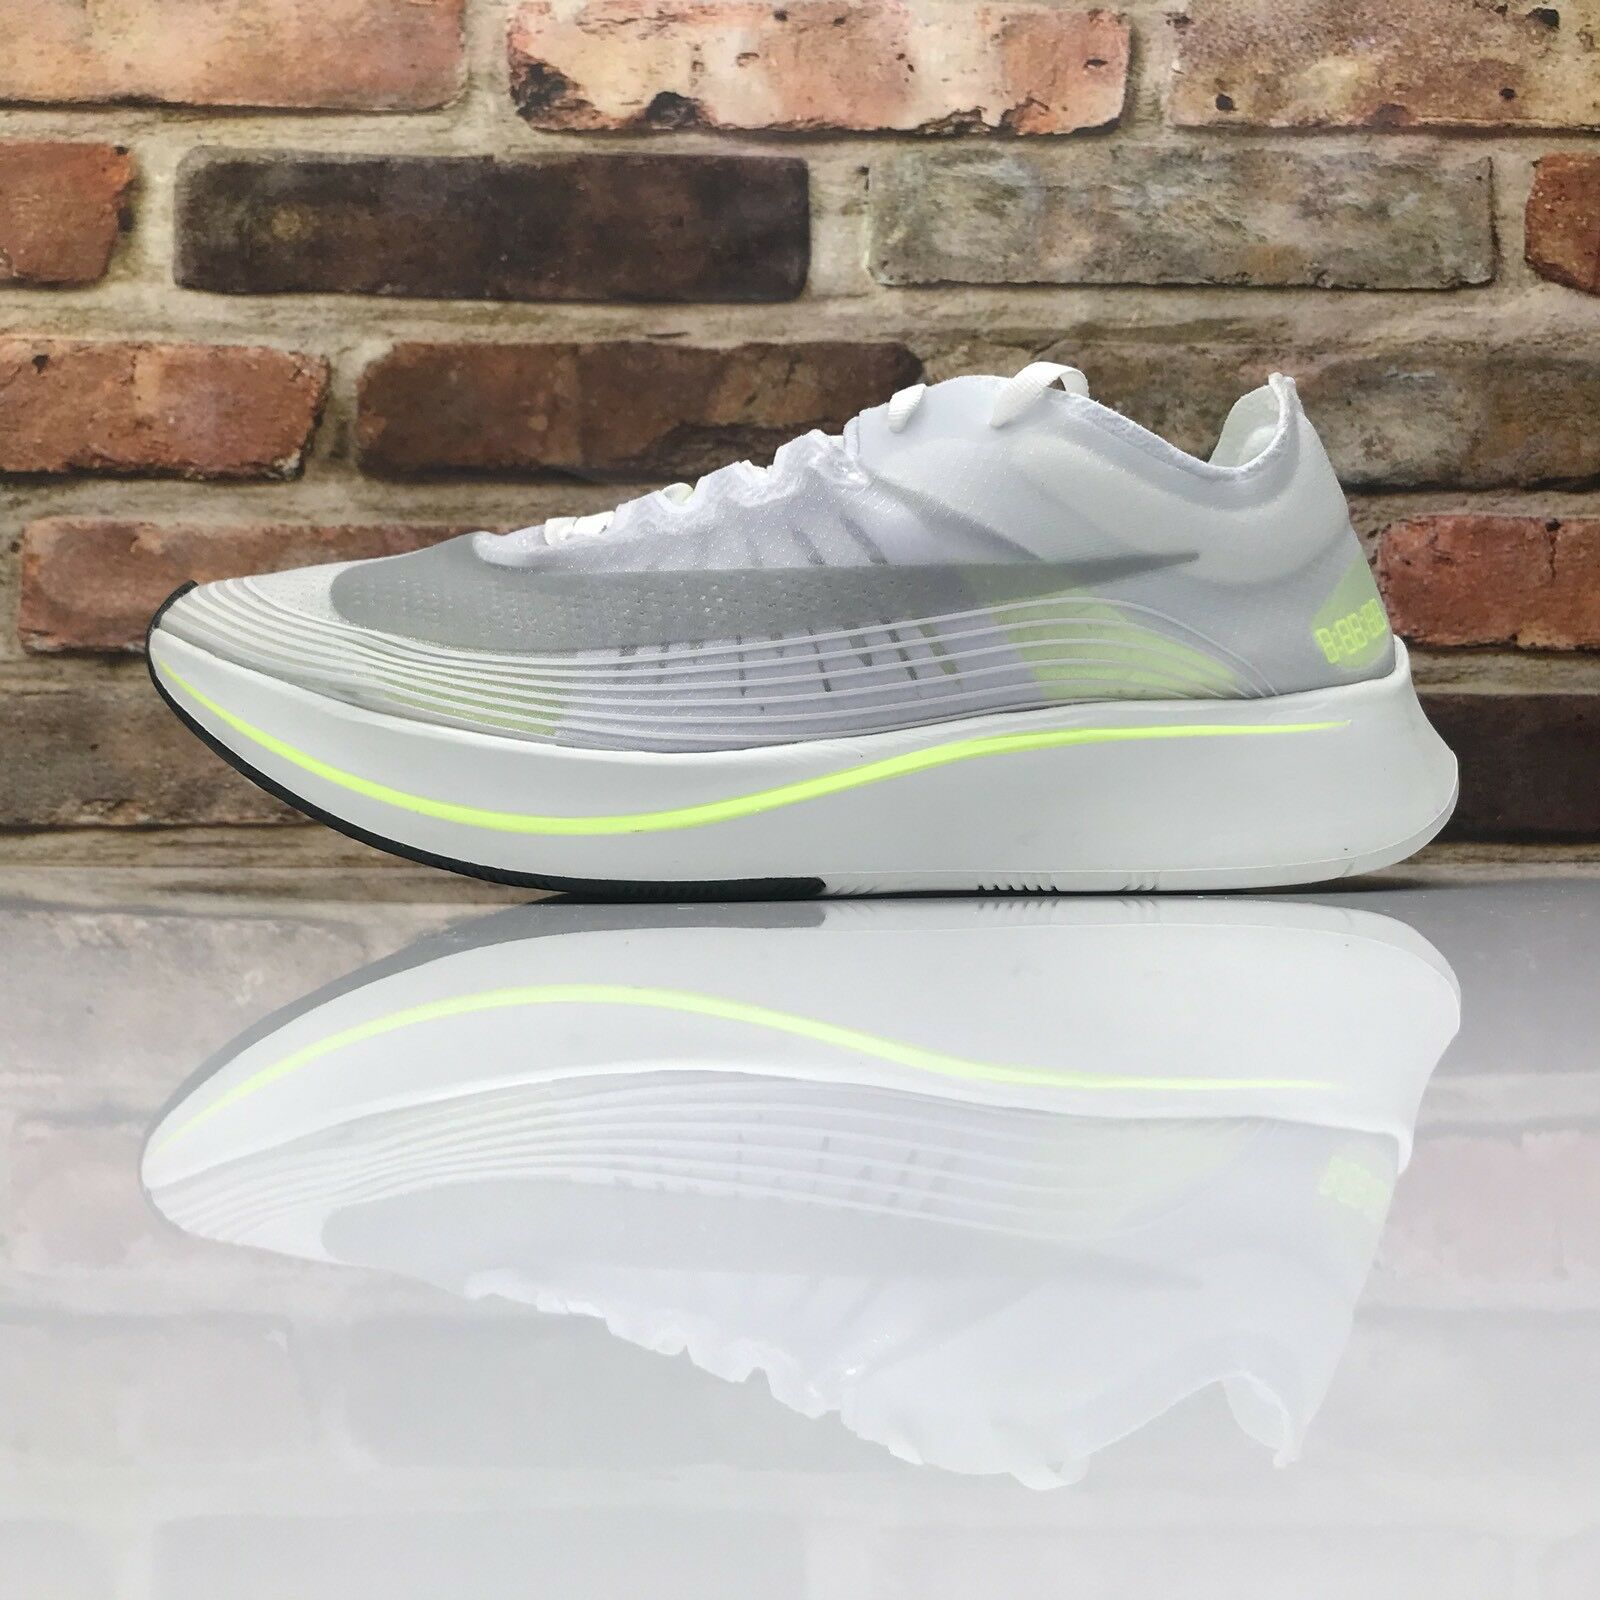 Nike Zoom Fly SP Running shoes Mens Size 10.5 Volt Glow Summit White AJ928 107